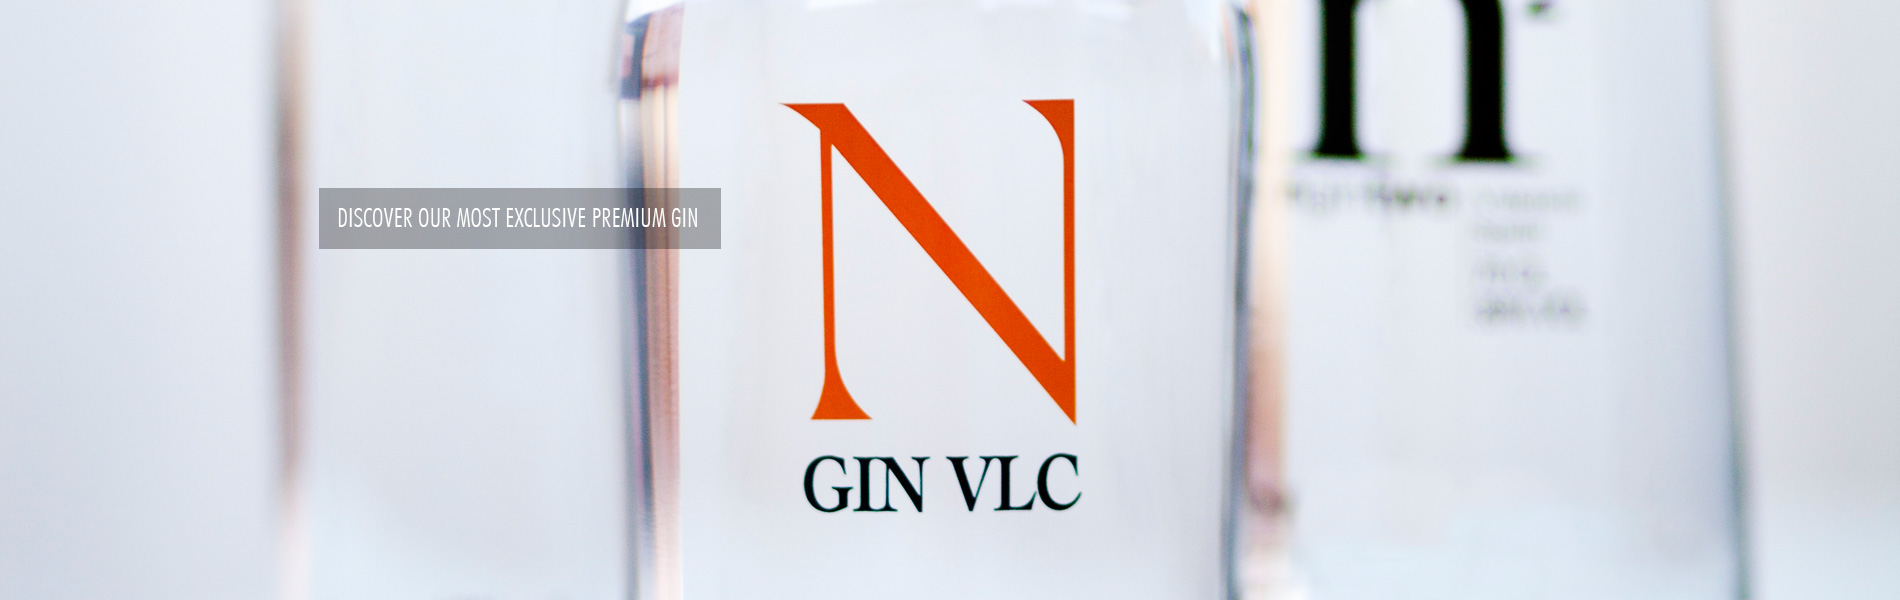 Discover our most exclusive premium gin